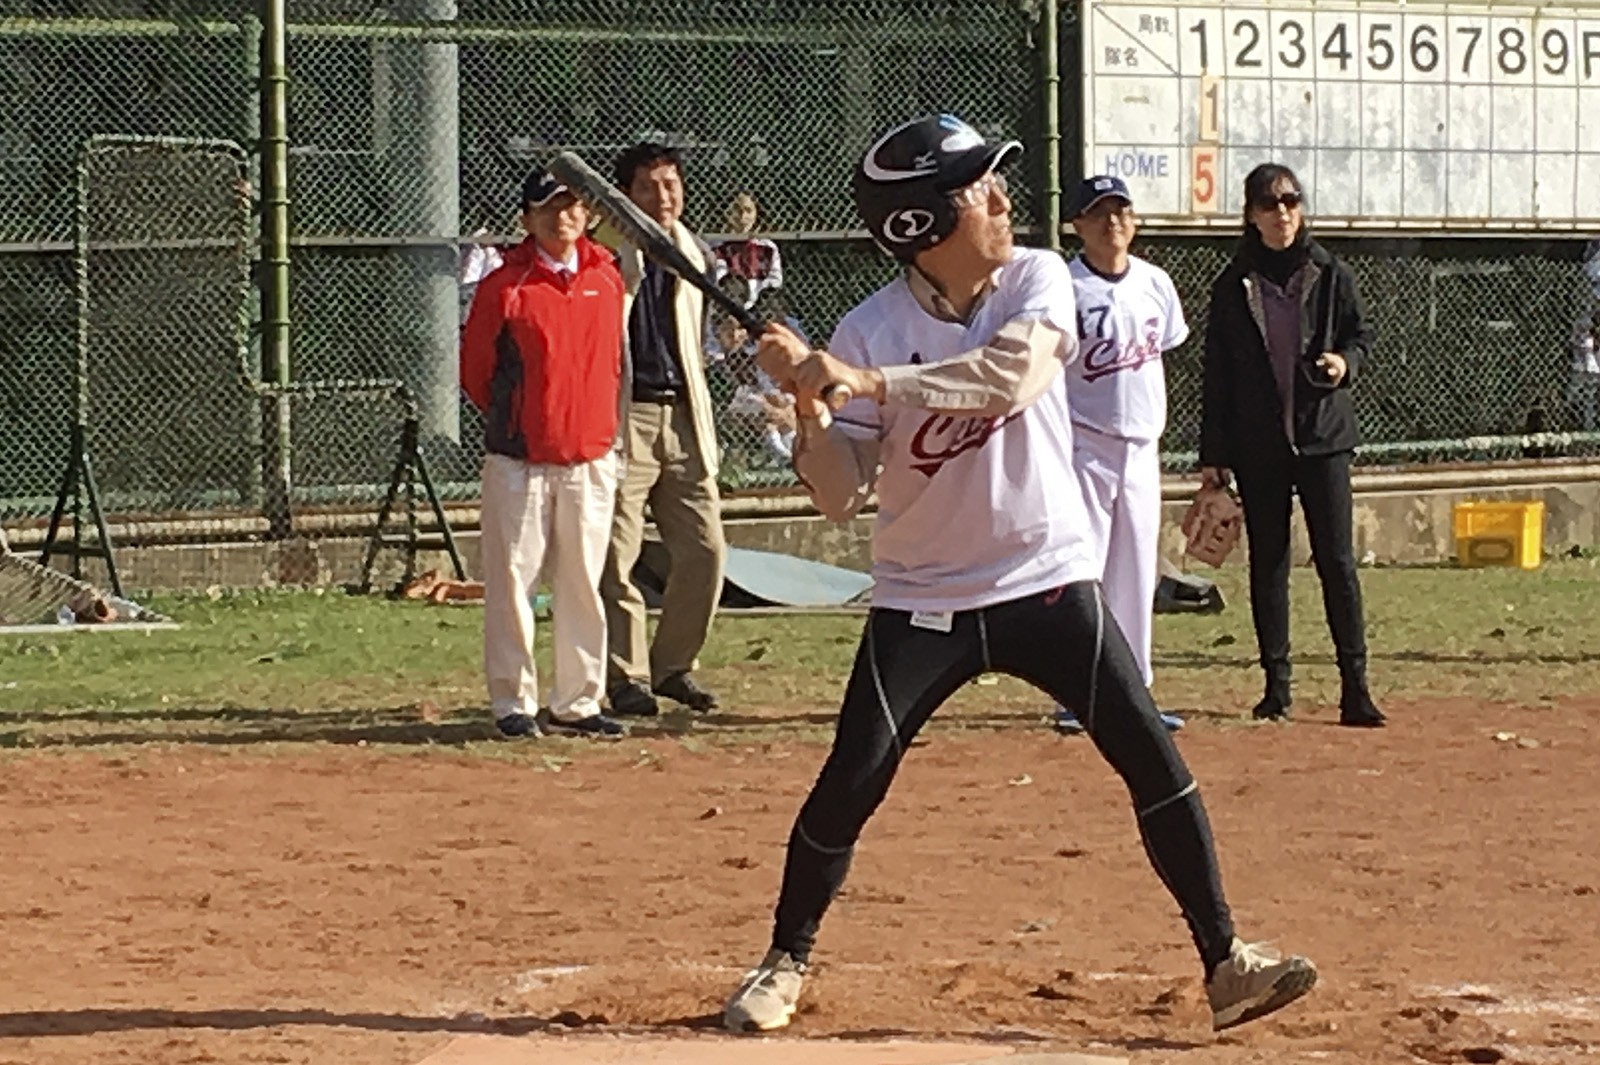 President Kuo shows his batting skills.